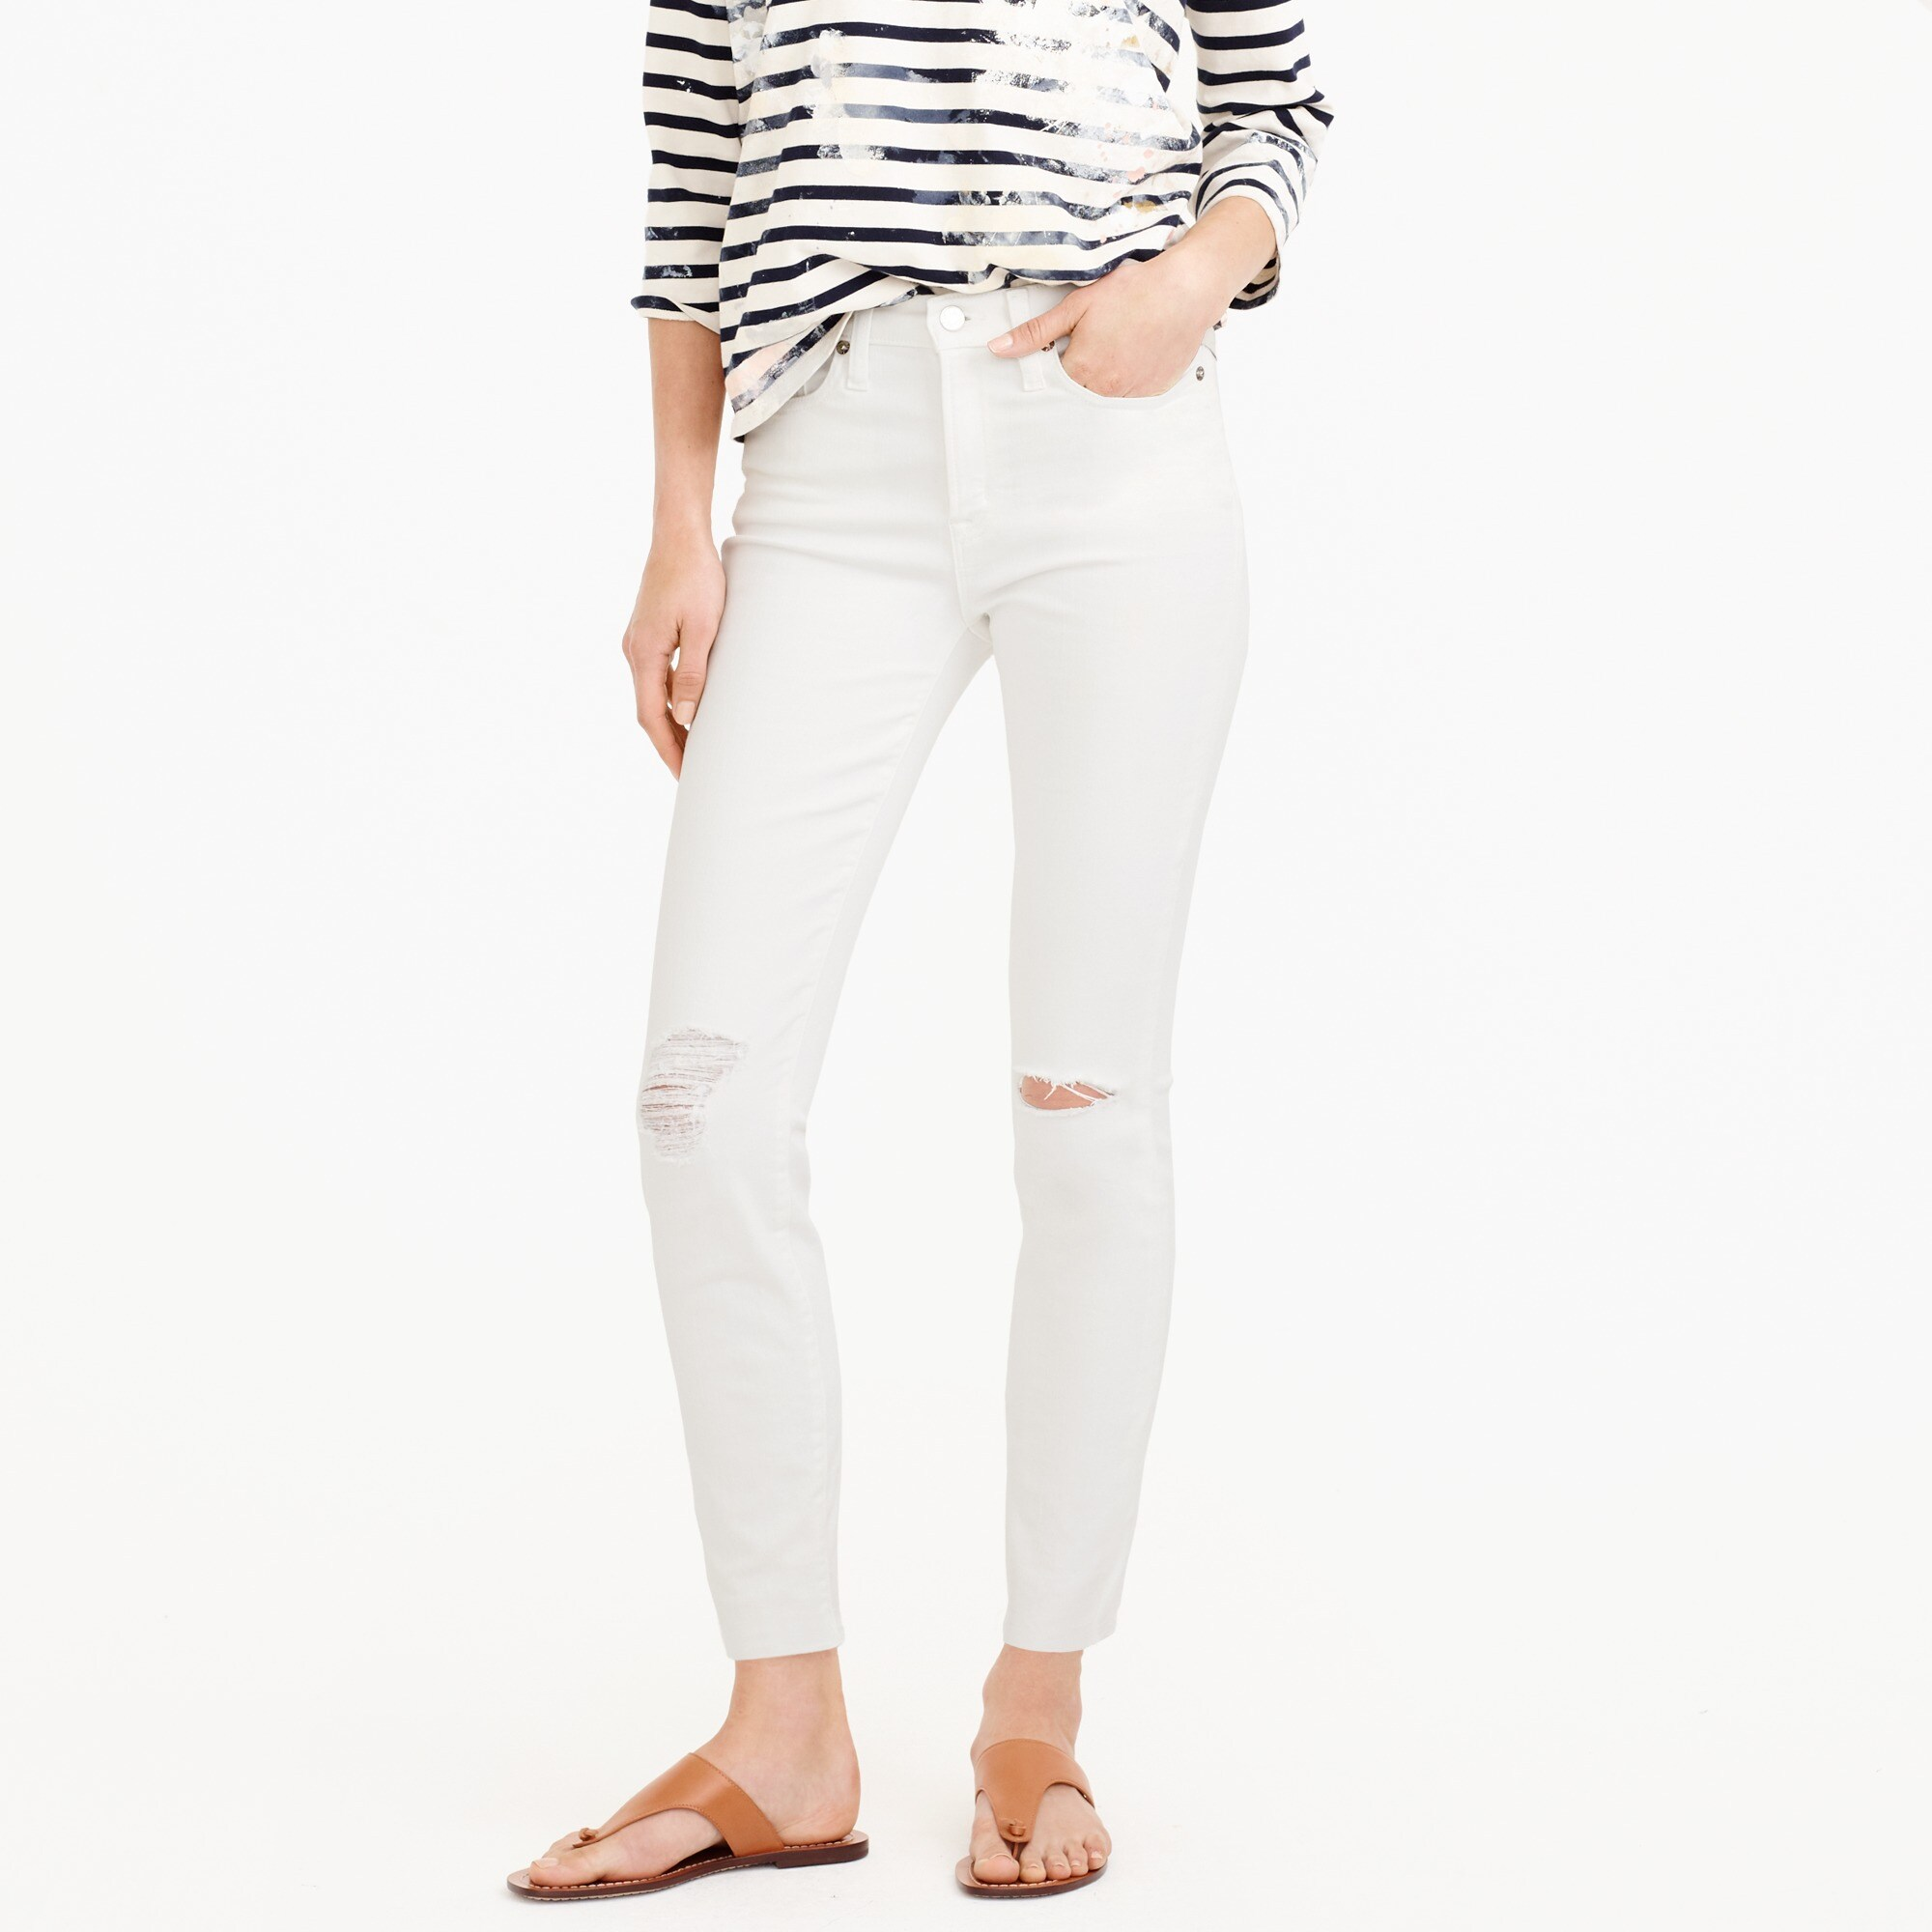 "petite 9"" destroyed high-rise toothpick crop jean in white : women denim"